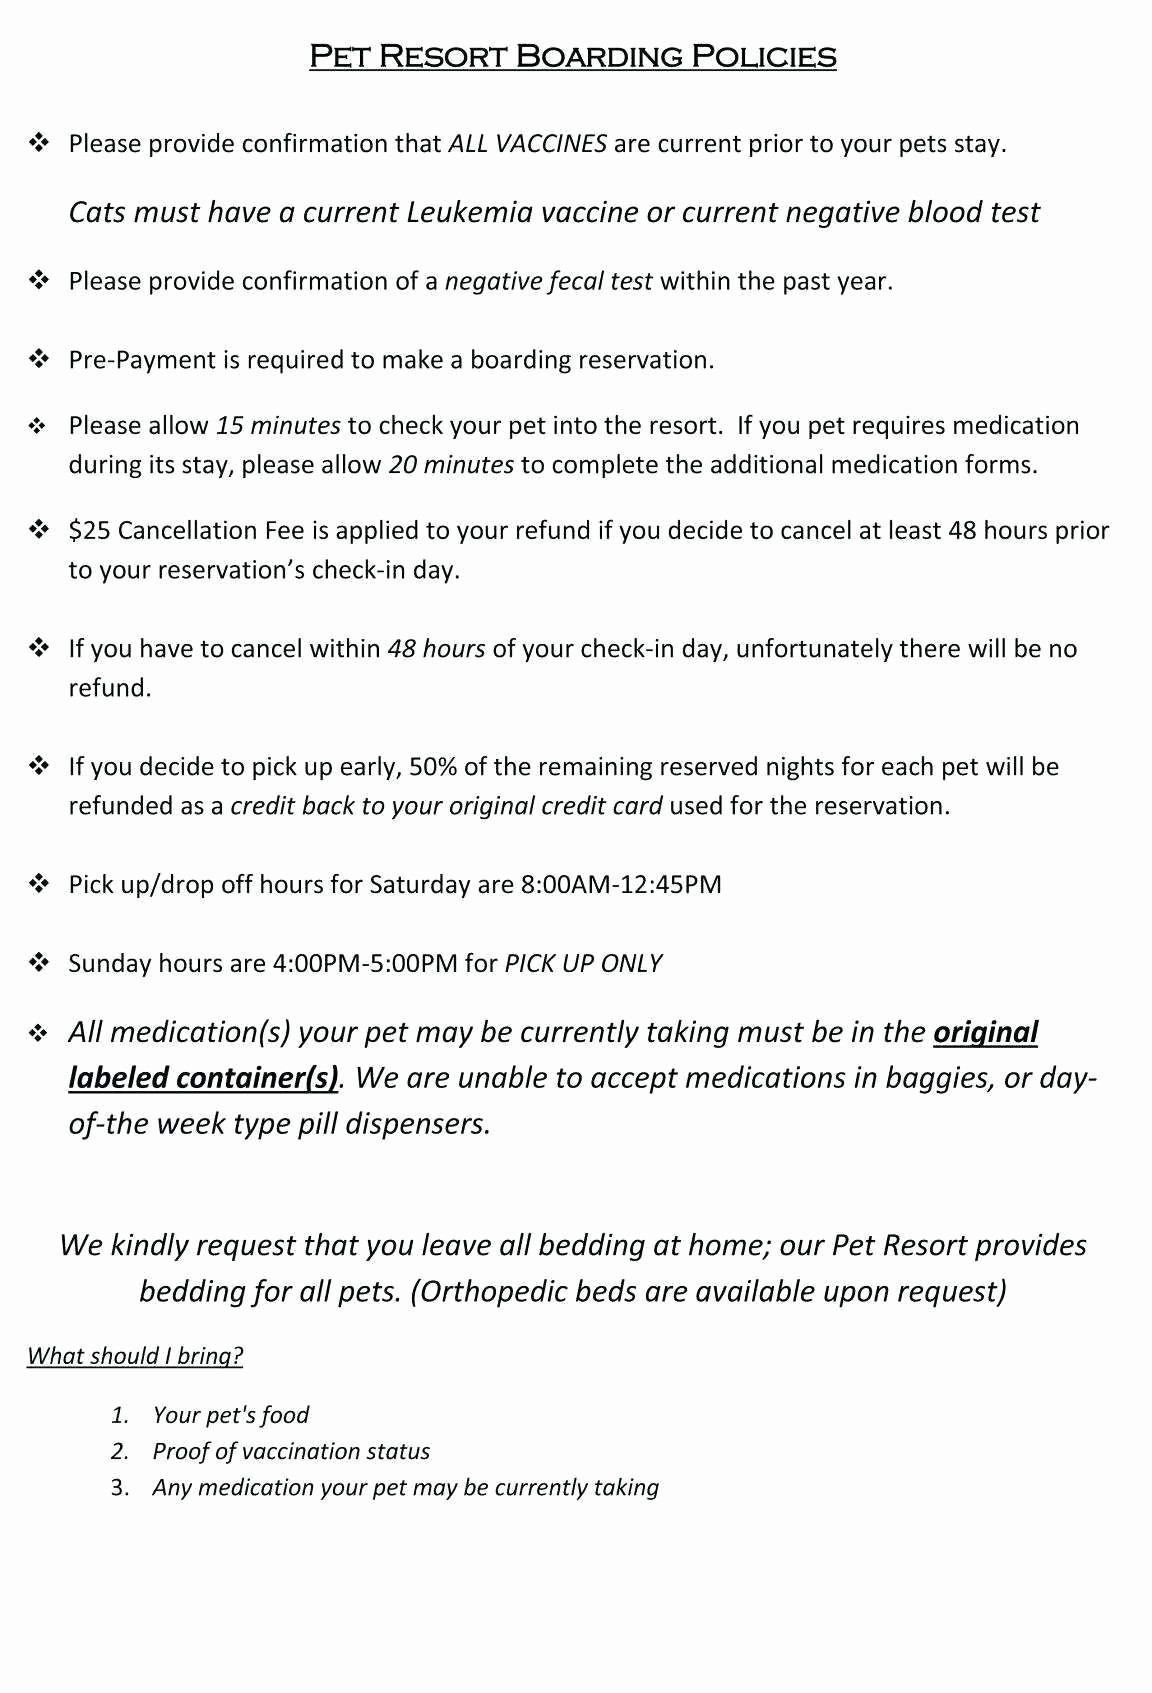 Pet Sitting Contract Template Free Elegant Dog Sitting Contract Template Dog Sitting Template Juve